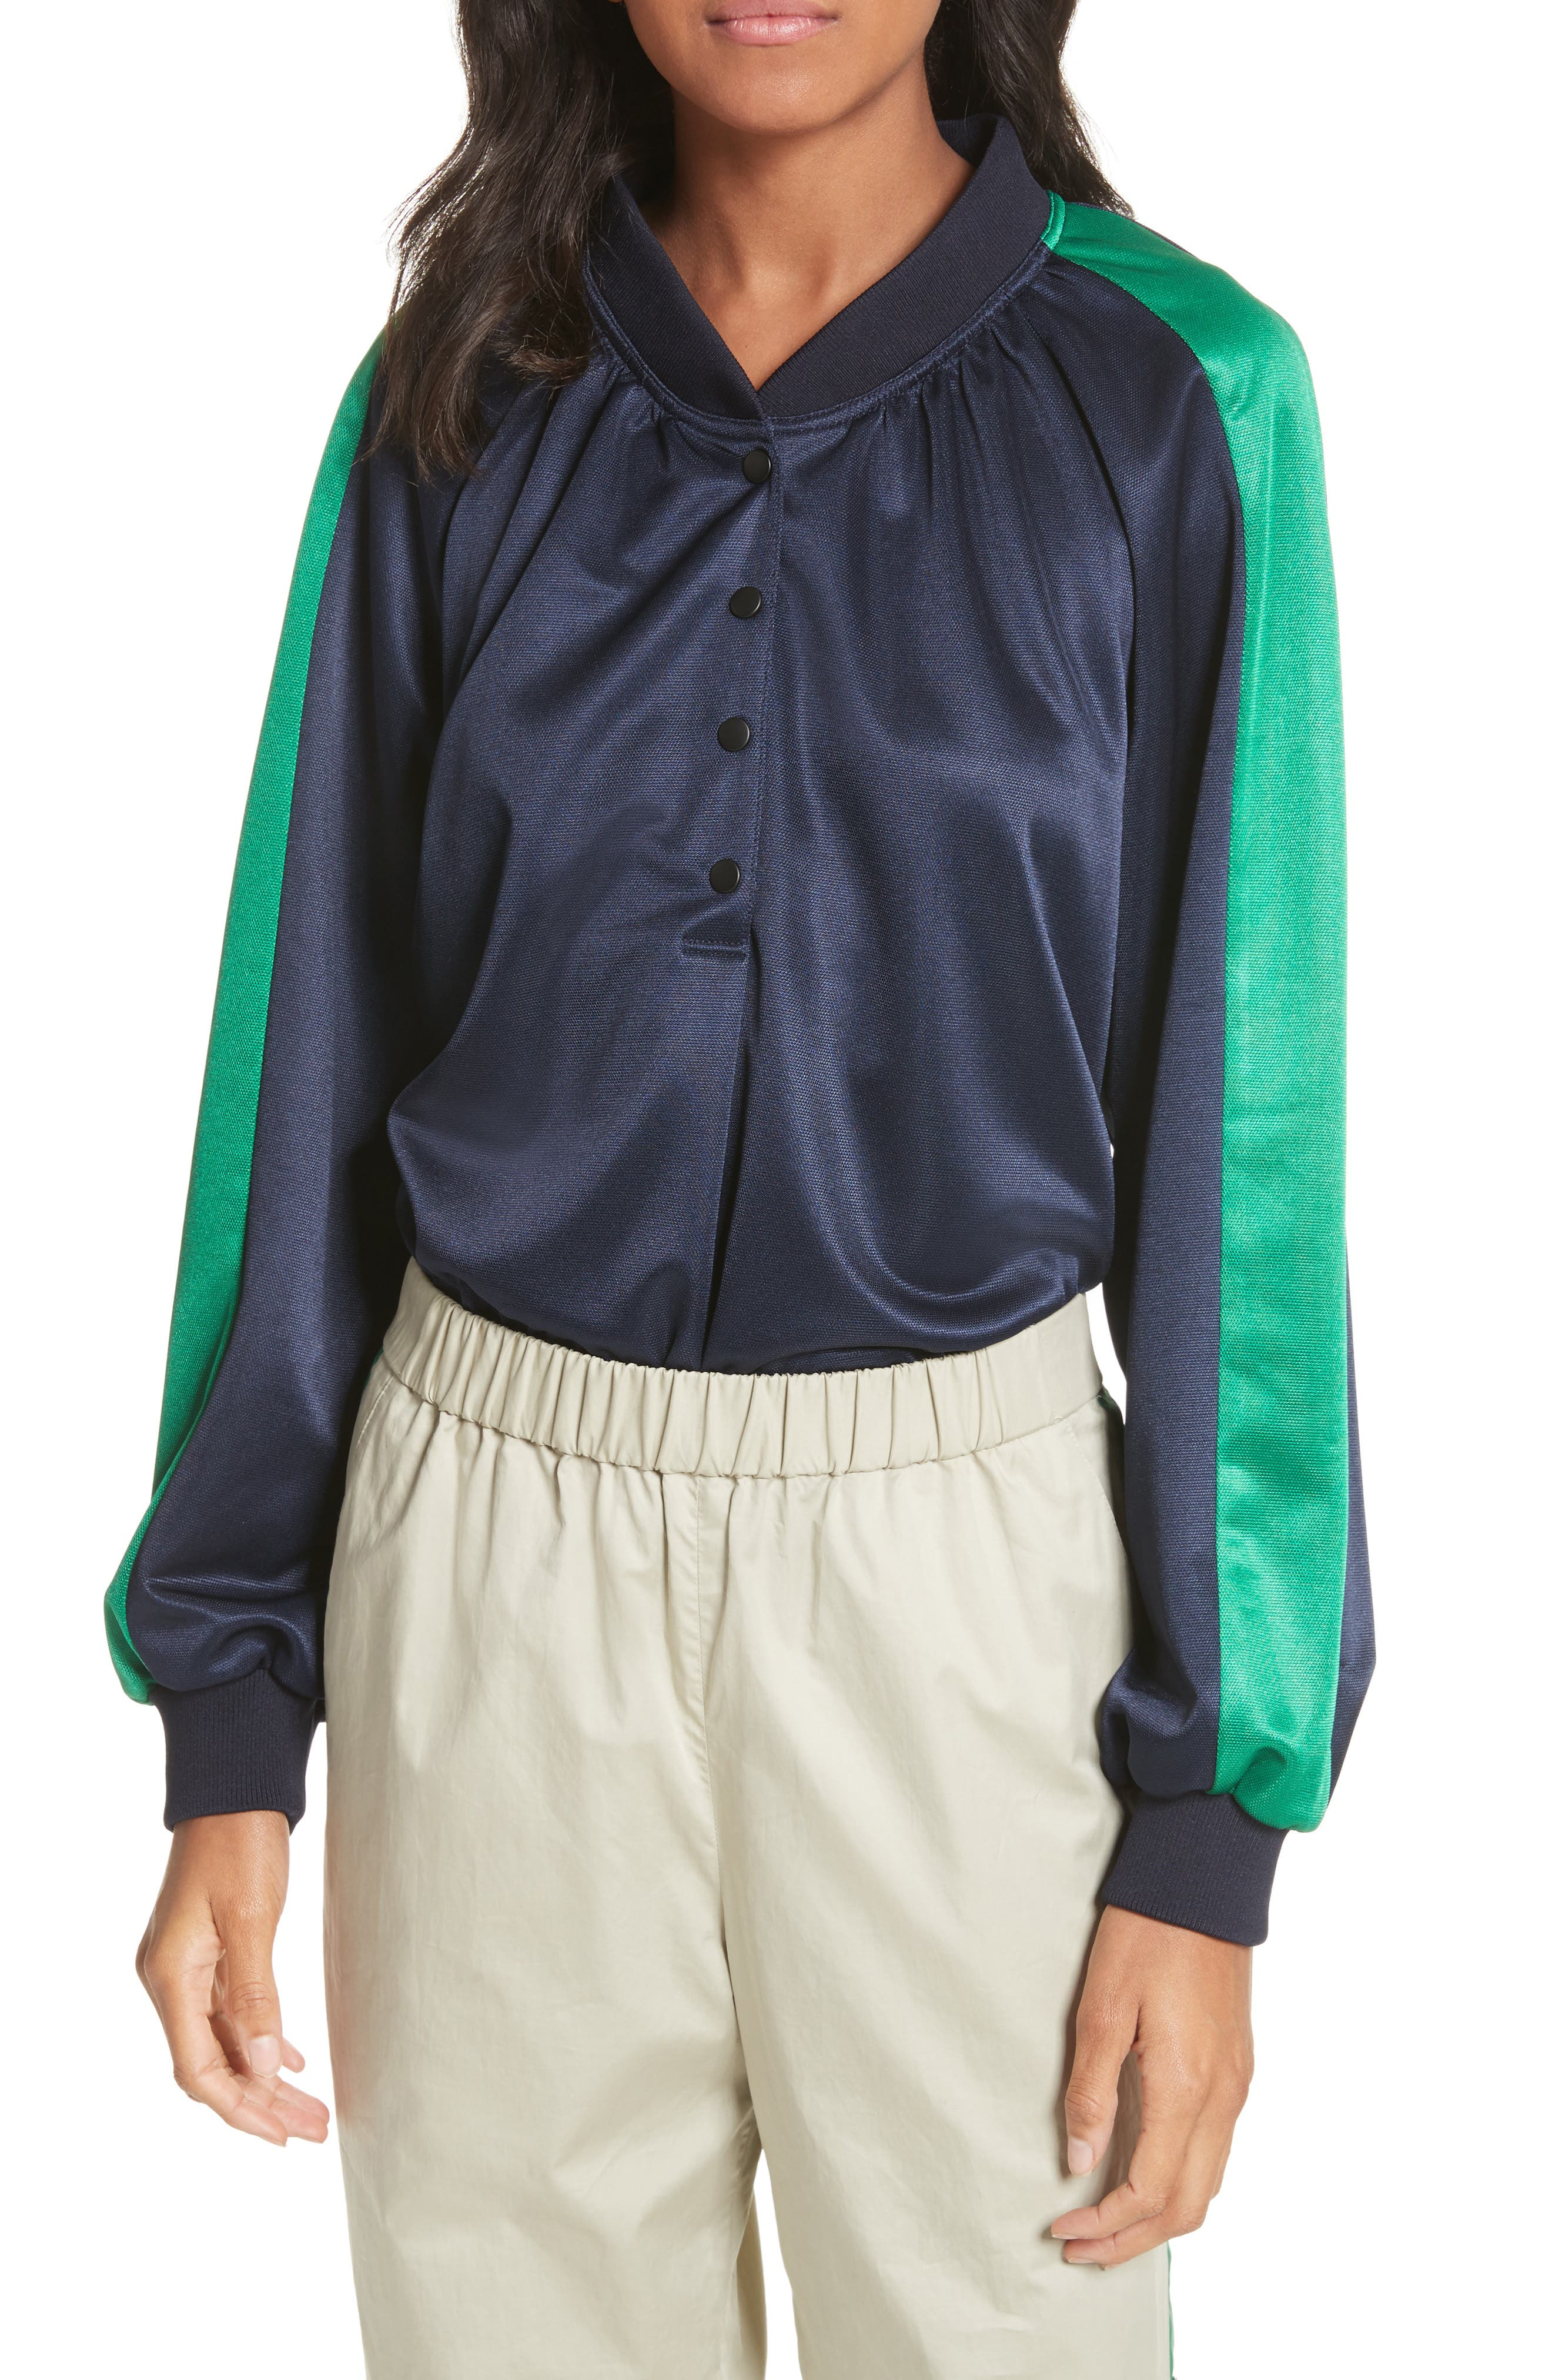 Pullover Track Jacket,                         Main,                         color, Navy/ Green Multi